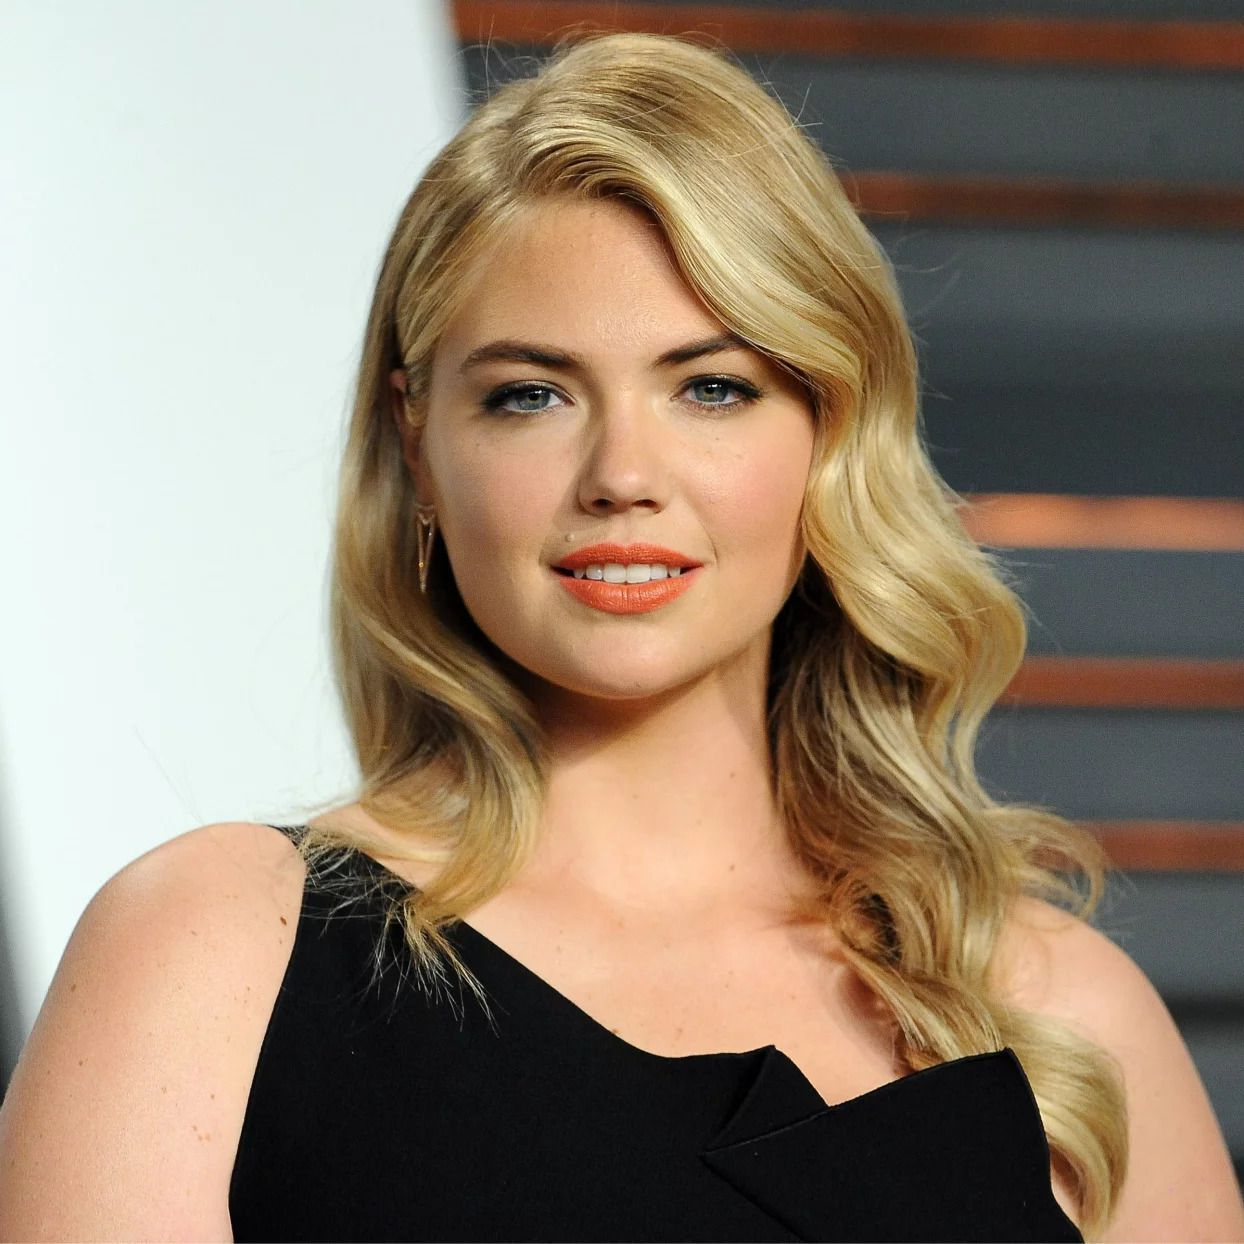 Kate Upton Biography, Biodata, Wiki, Age, Height, Weight, Affairs & More